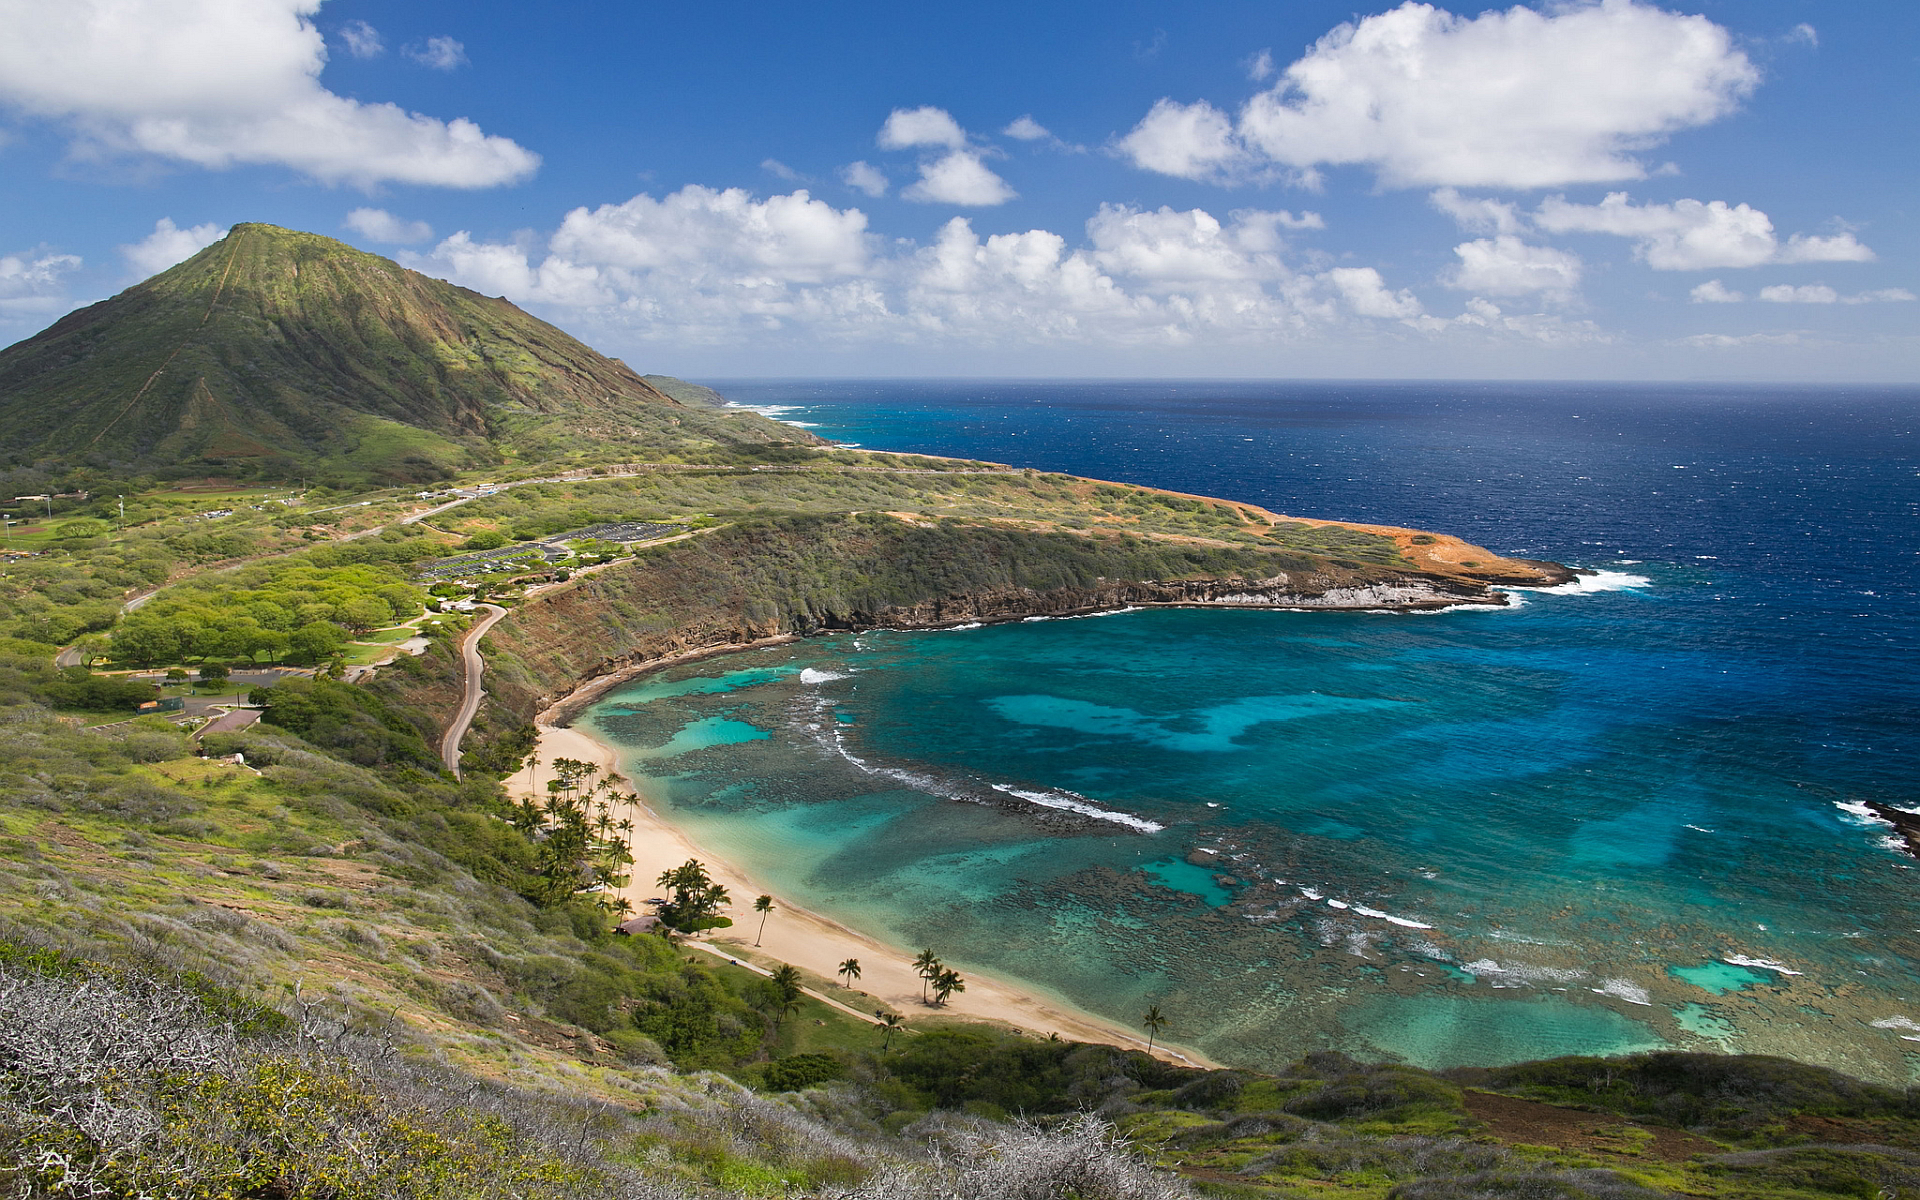 hanauma bay beautiful